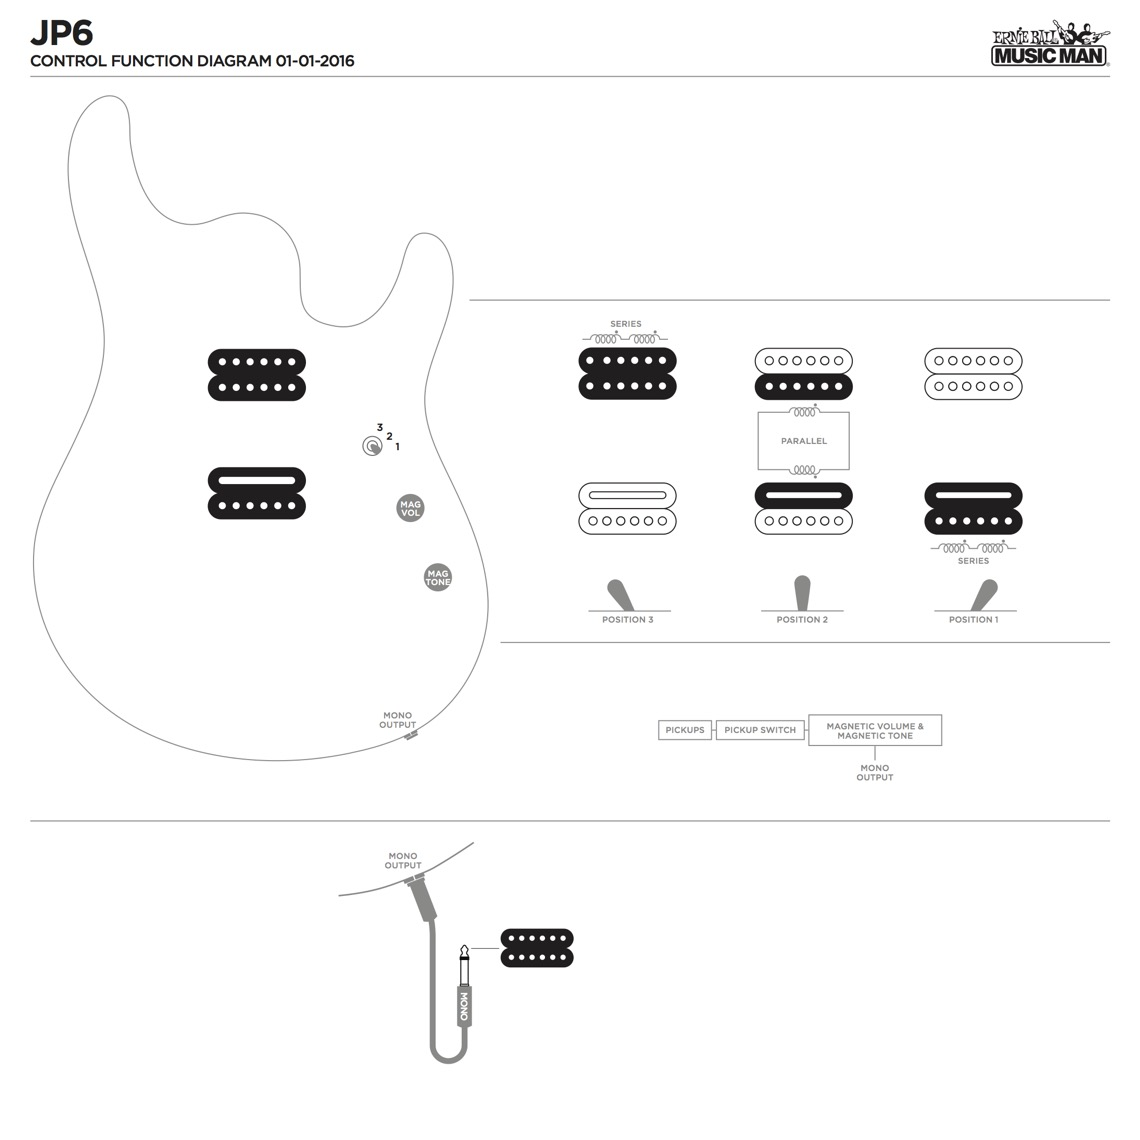 John Petrucci 6 Guitars Ernie Ball Music Man Aluminum Body Stratocaster Wiring Diagram Pickup Configuration 1